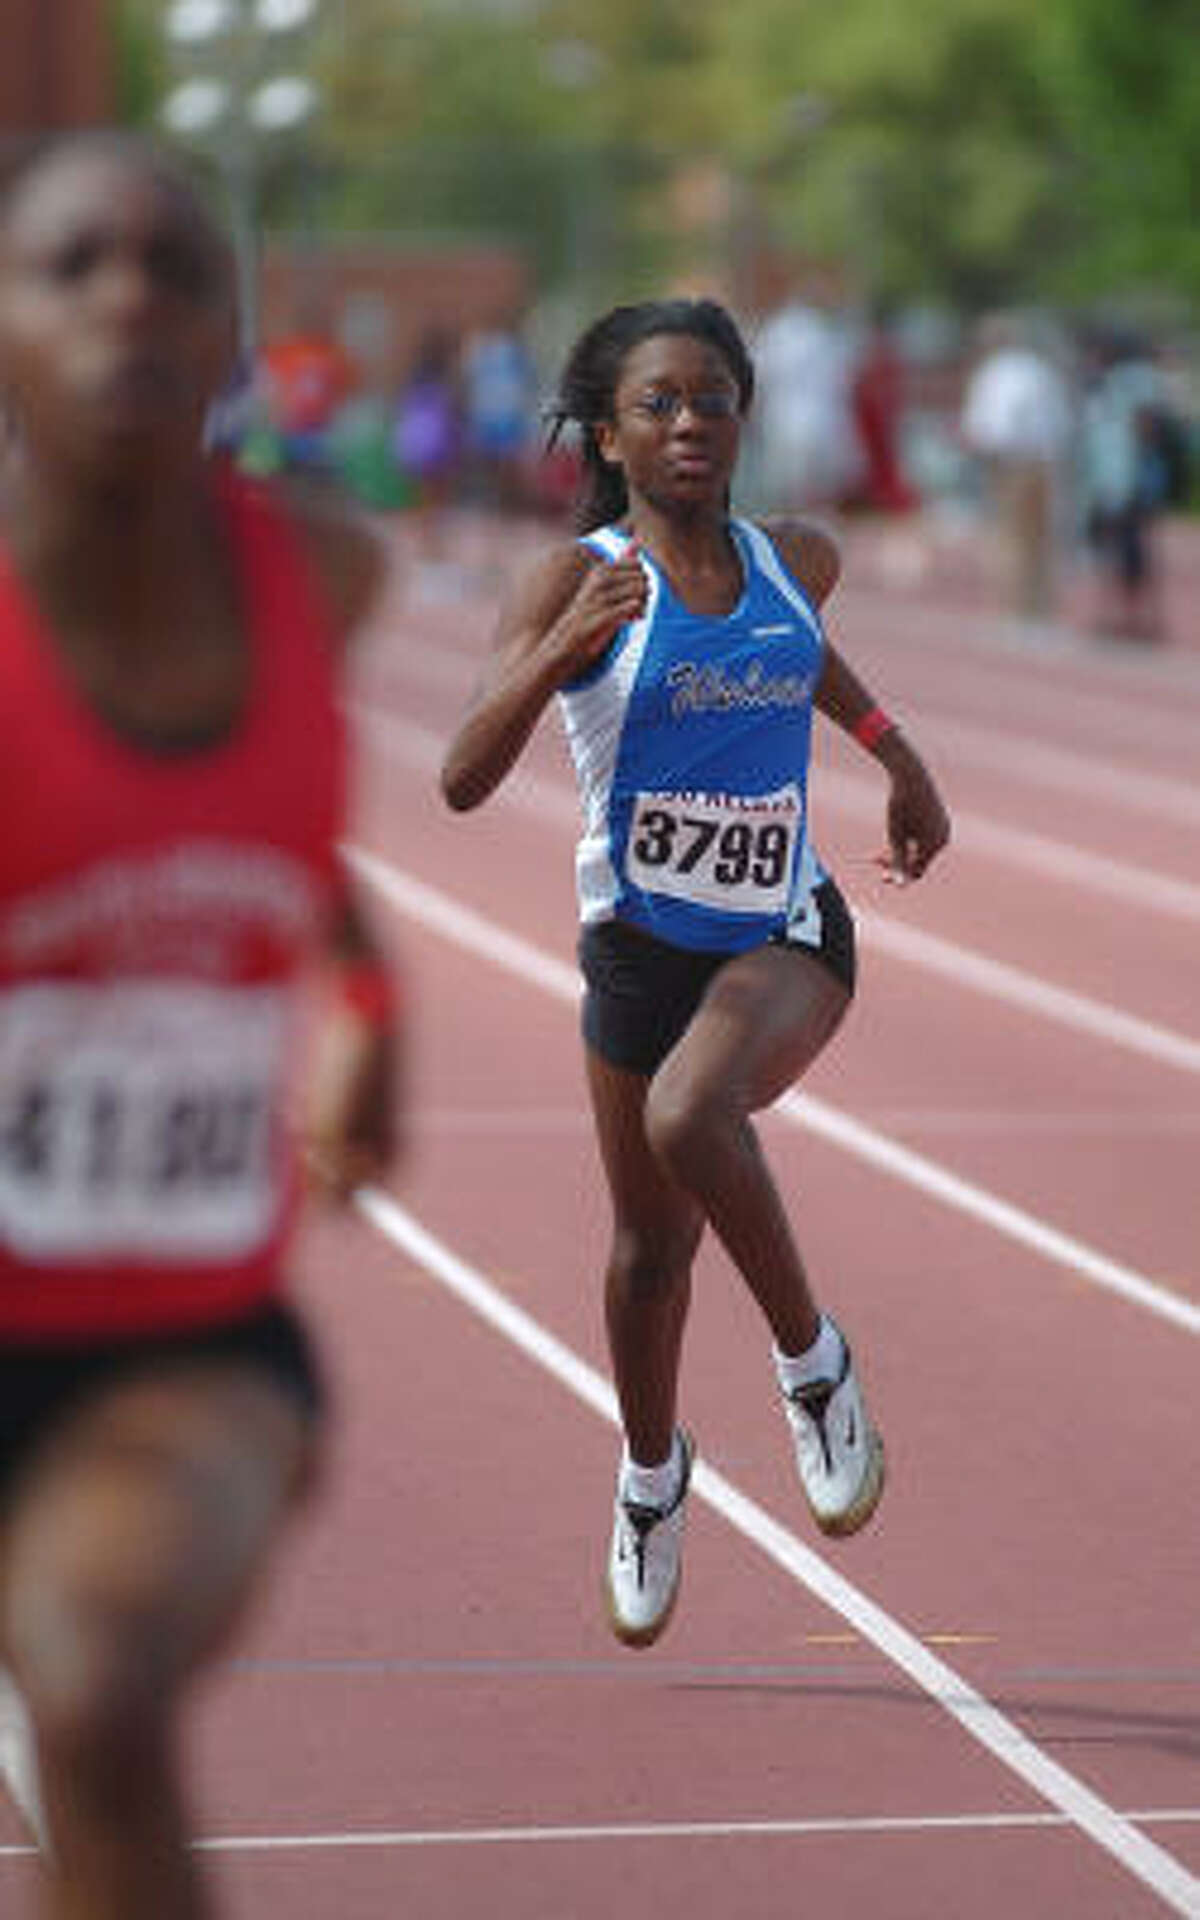 TSU Relays: Asia Davis of Westside High runs in the 100-meter event during the 56th Annual TSU Relays at Texas Southern University. .